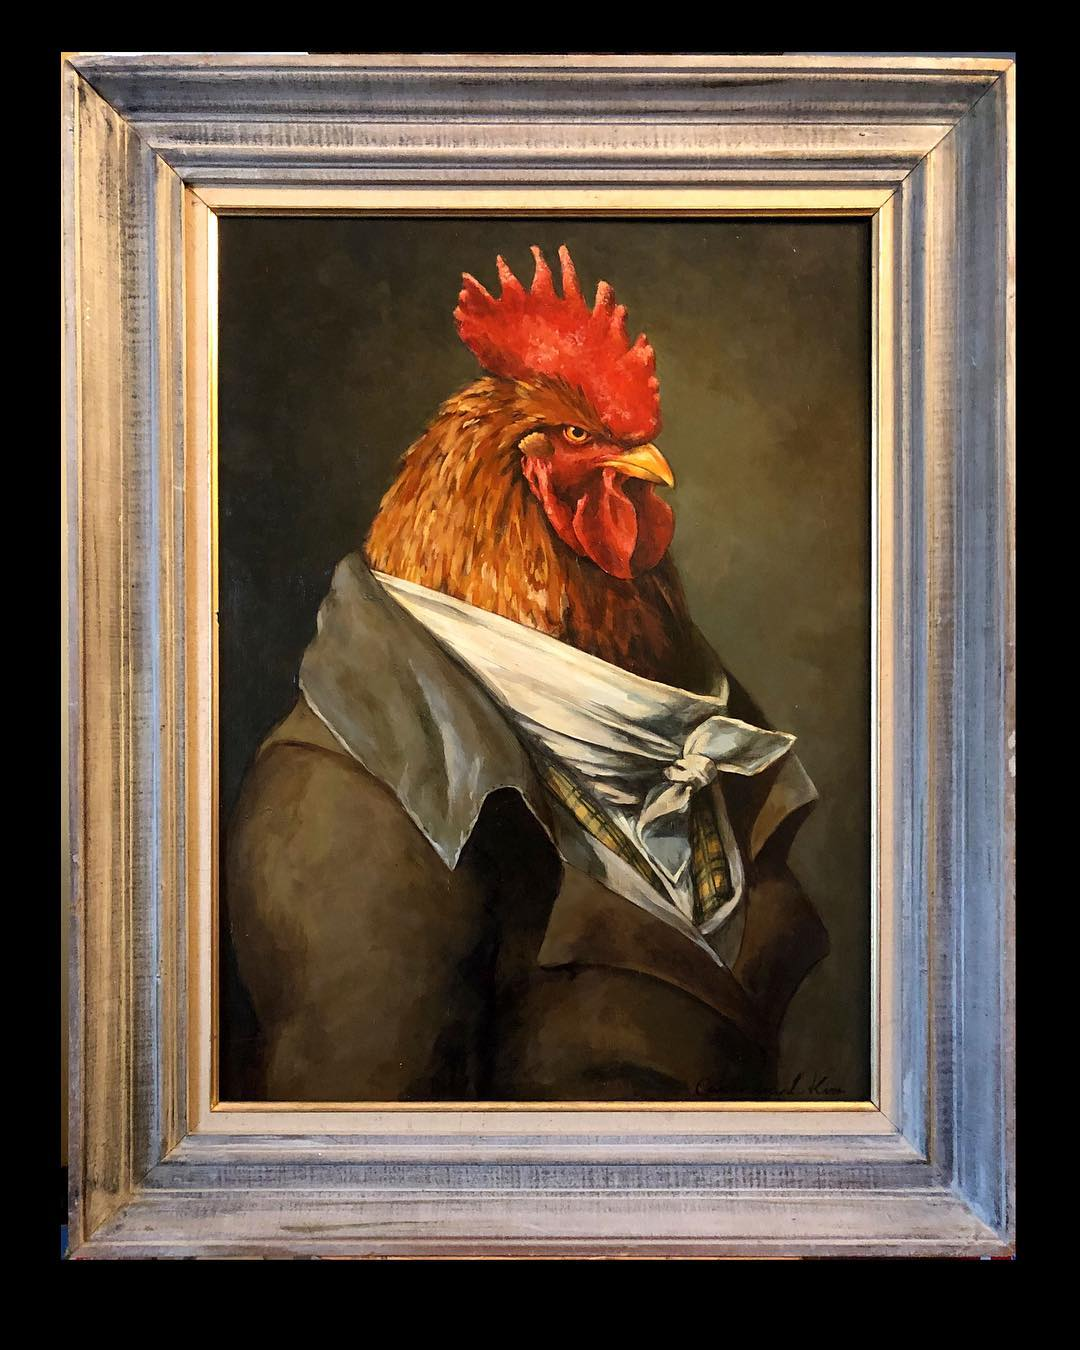 The Arrogant Rooster